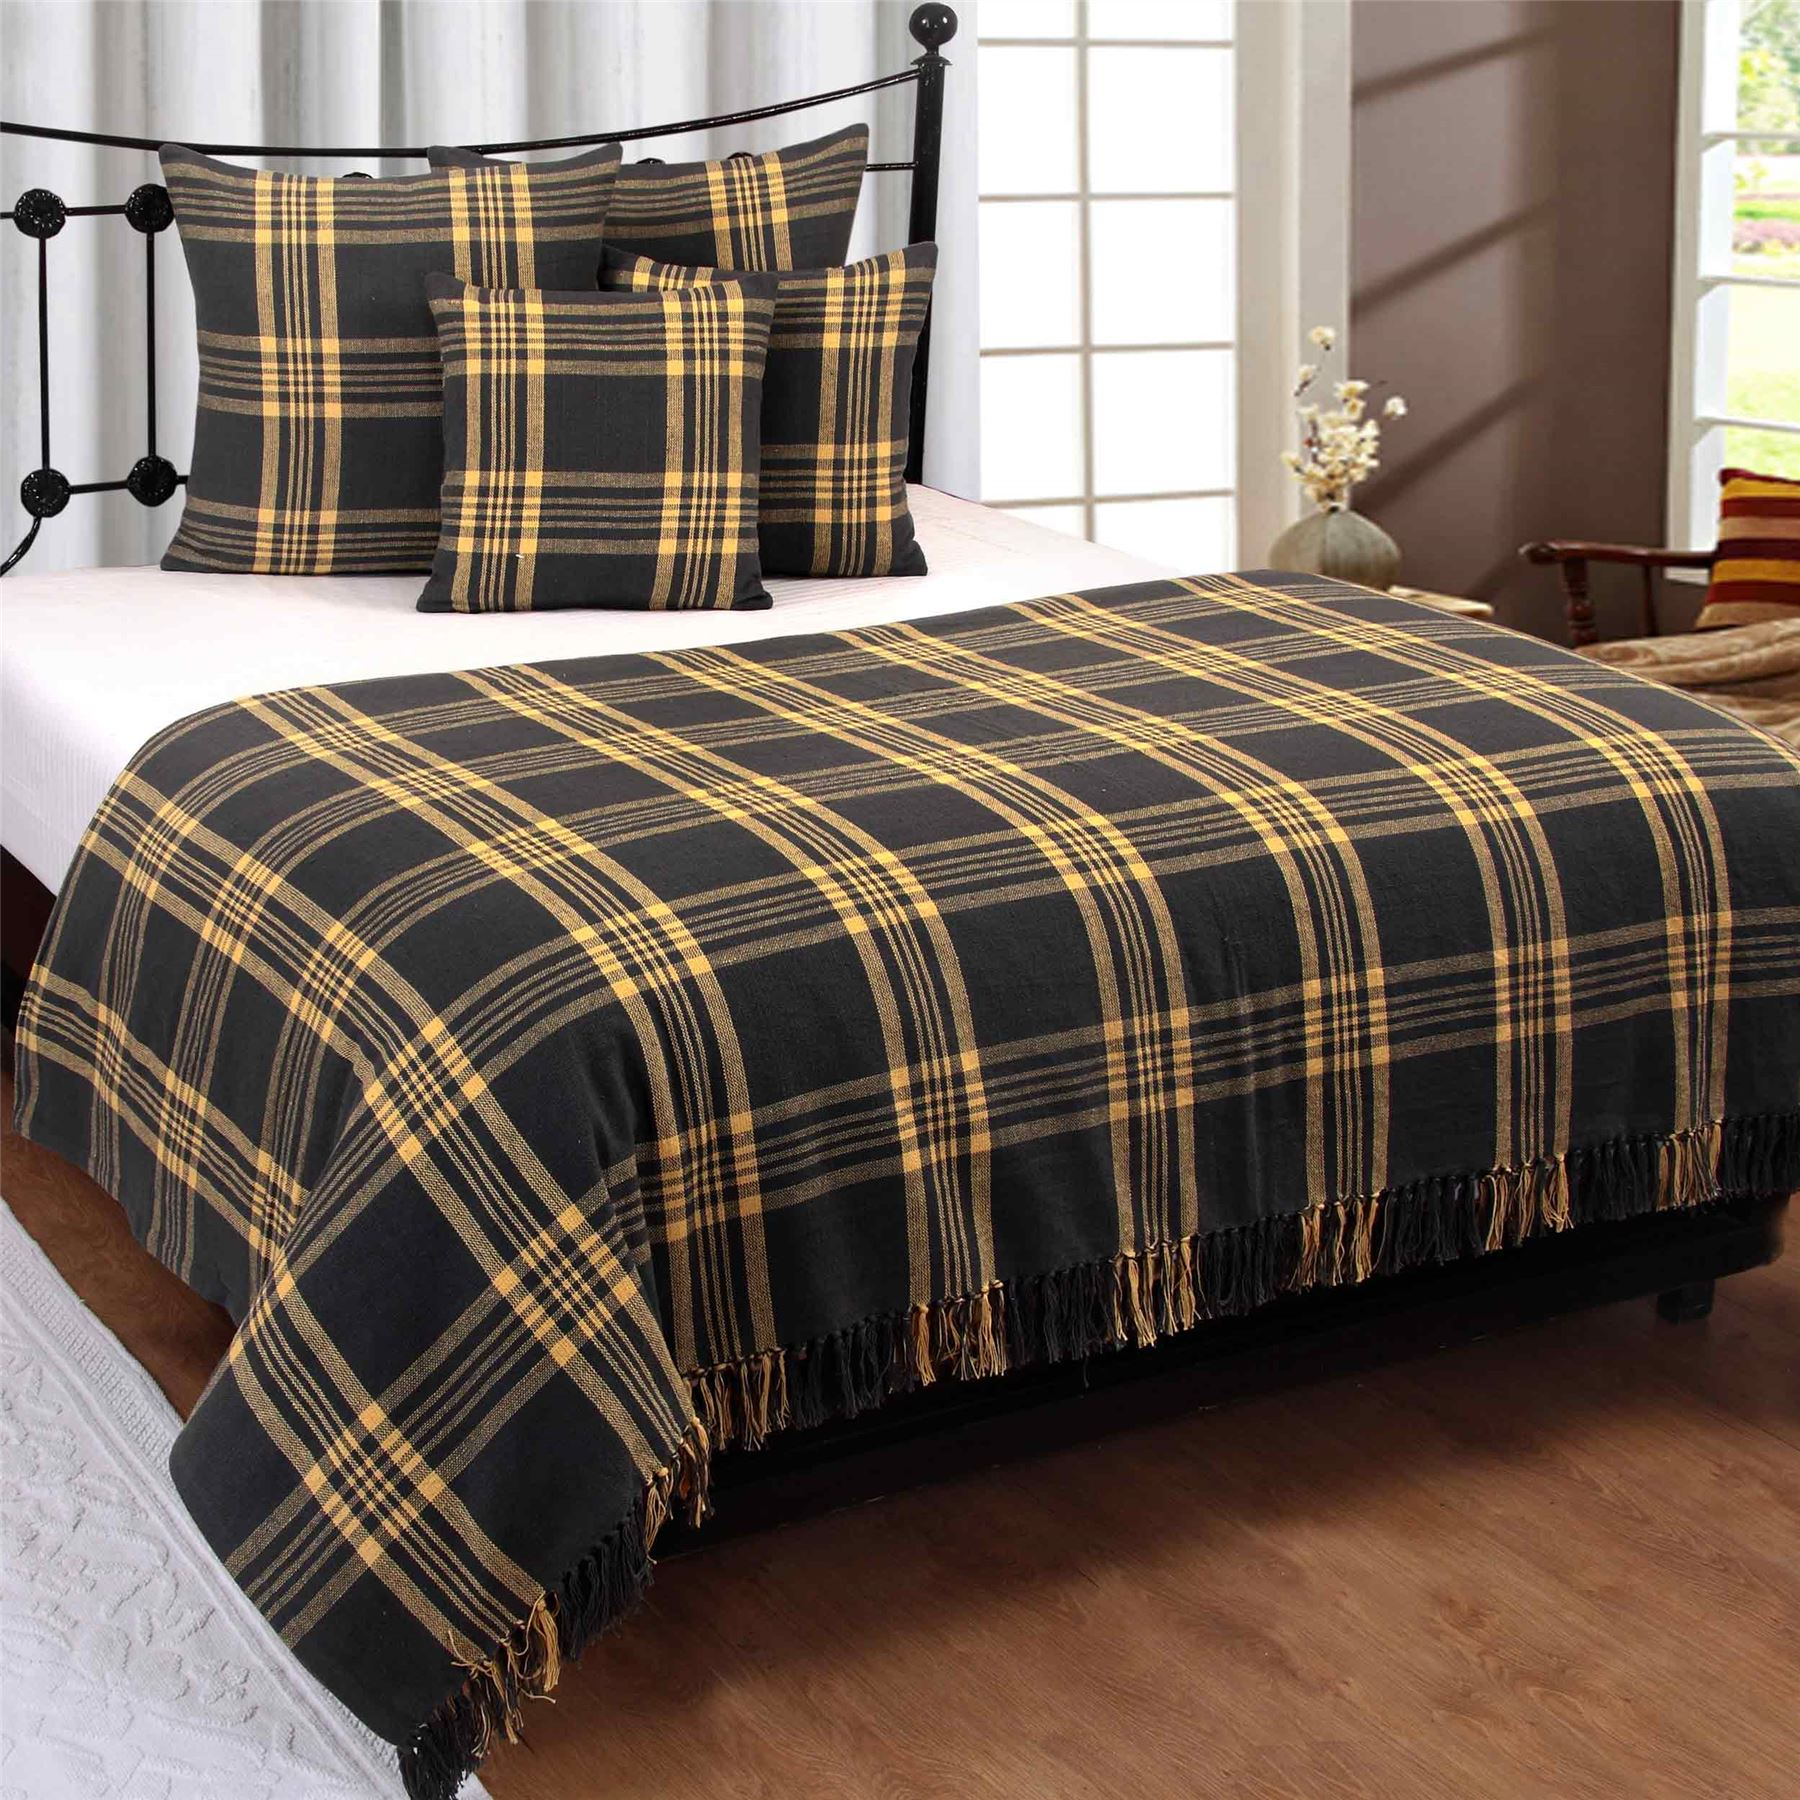 Cotton Extra Tartan Throws for Sofas Bed Throw Blankets